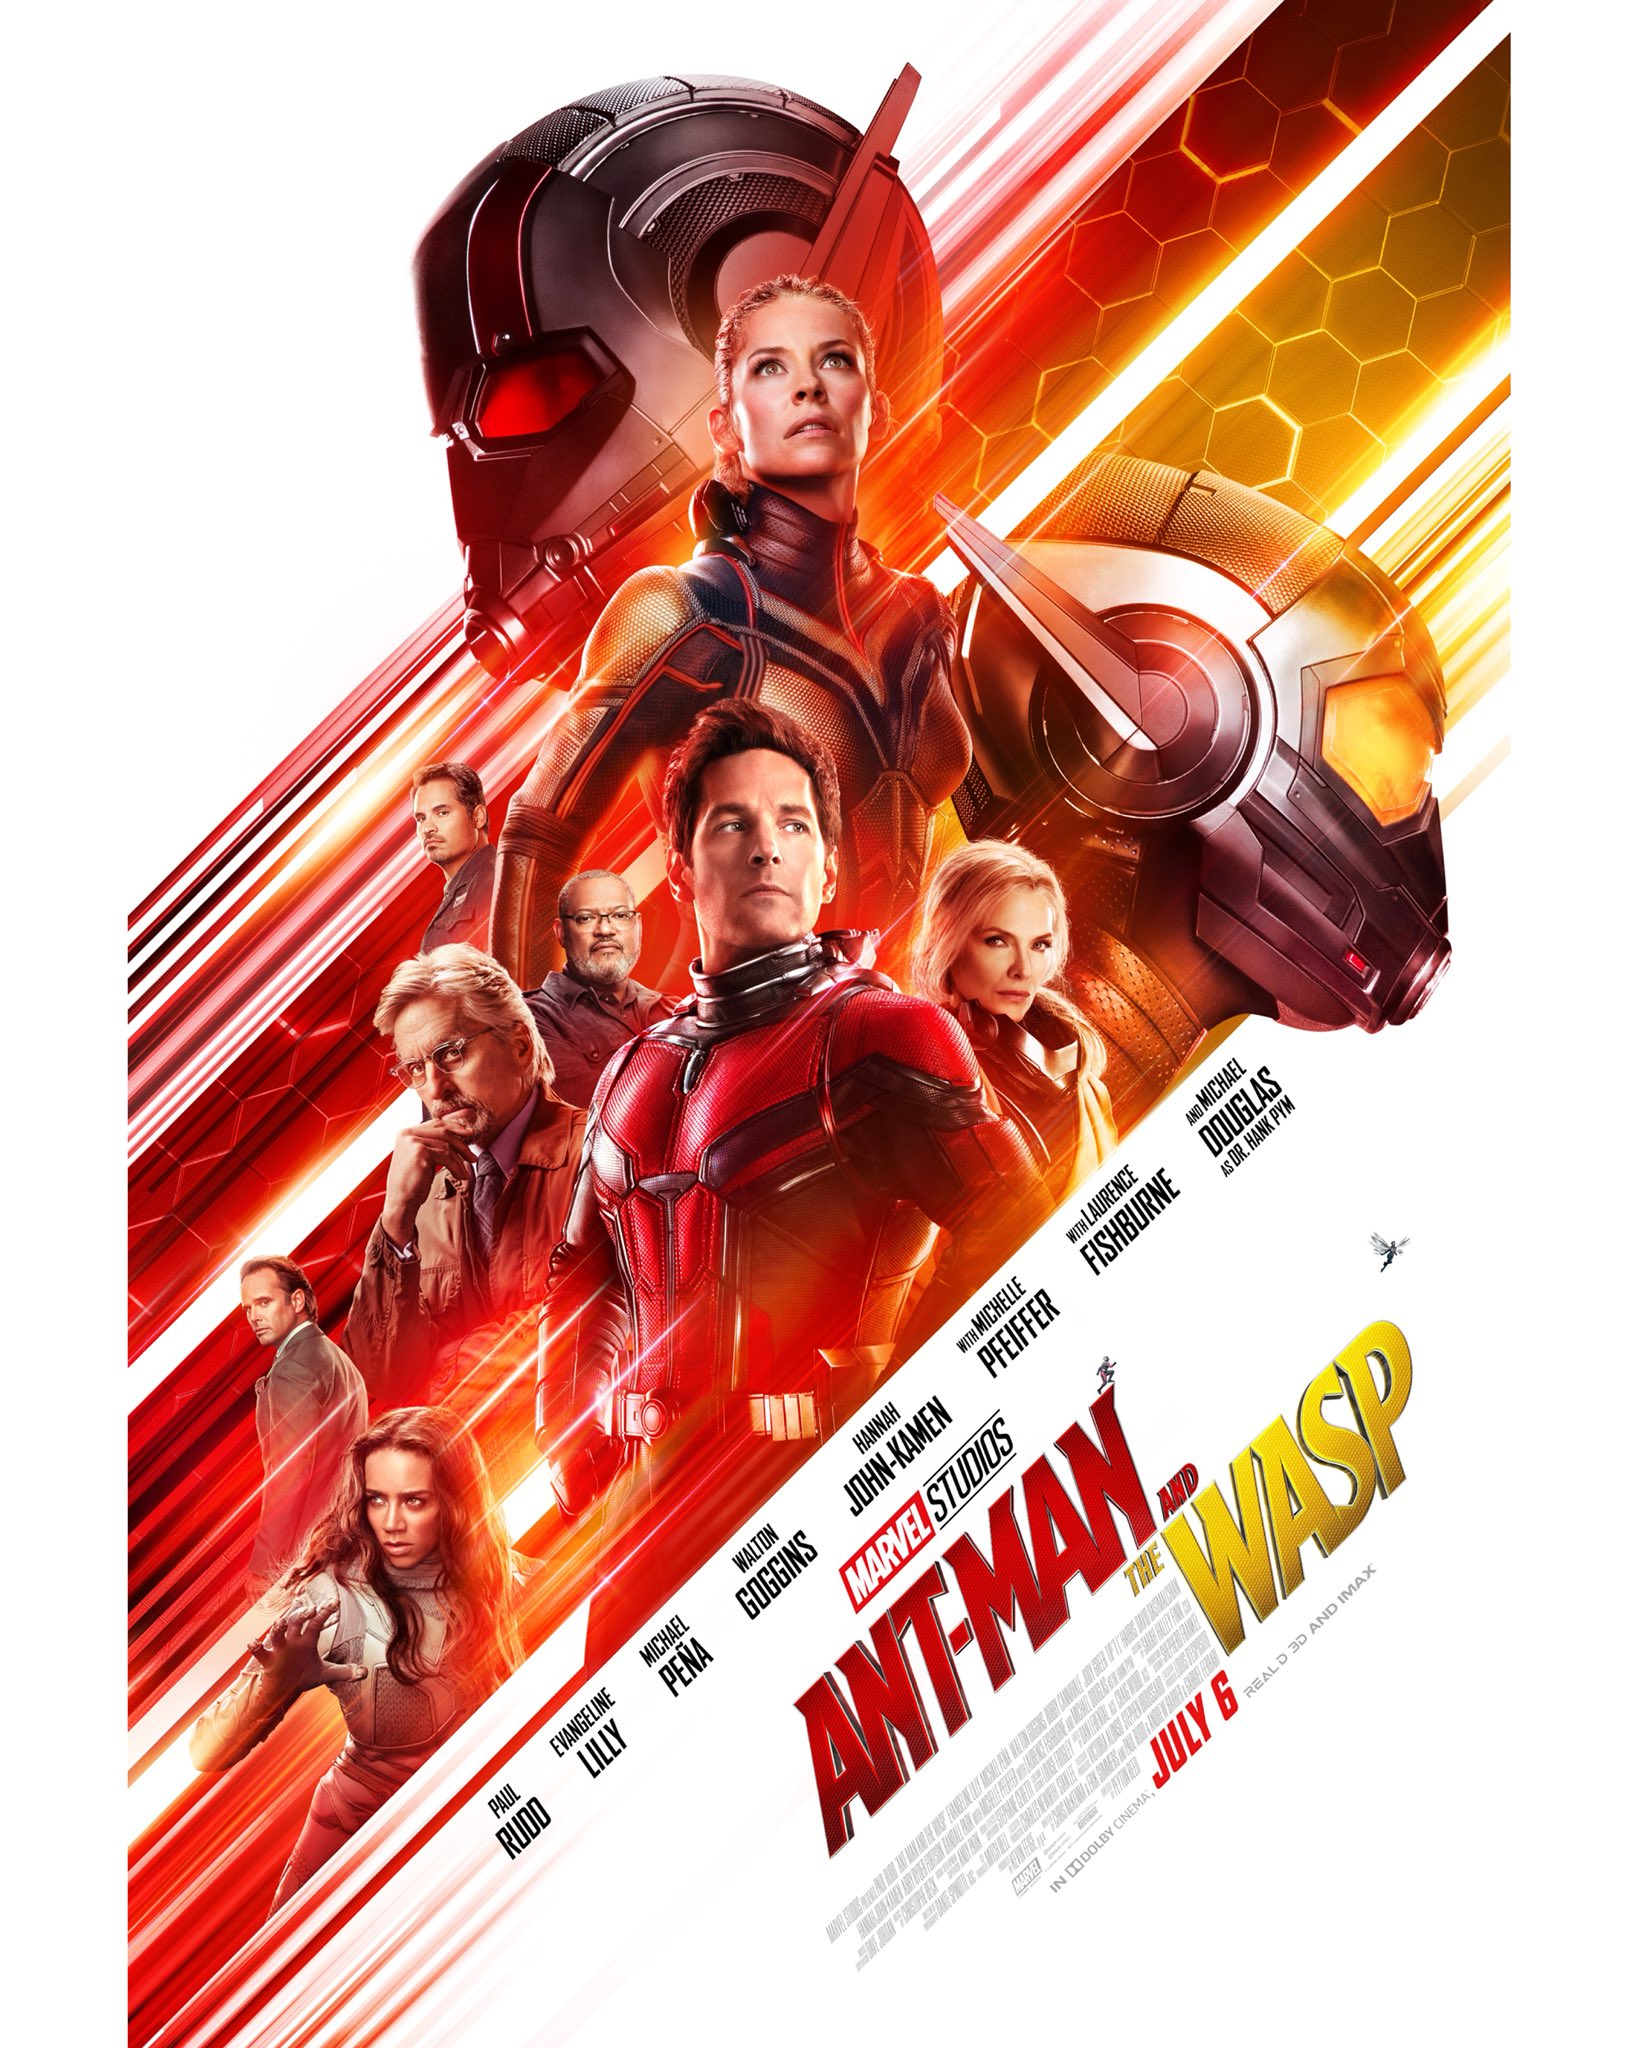 Ant Man and The Wasp  DcC9f1vU0AAzm3z